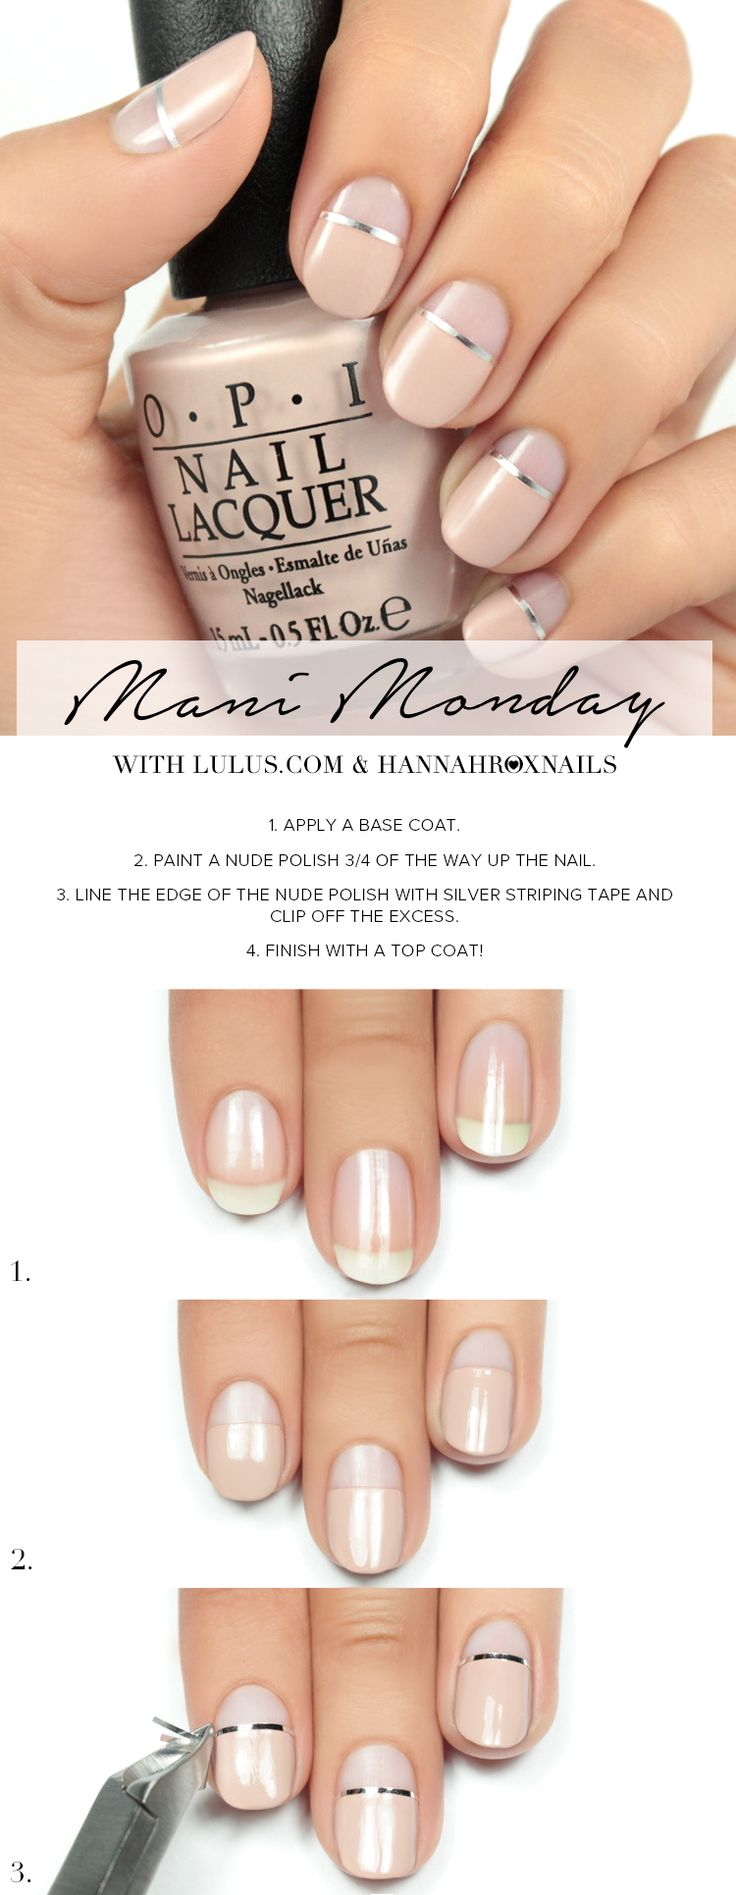 Mani Monday: Nude and Silver Nail Tutorial at LuLus.com!